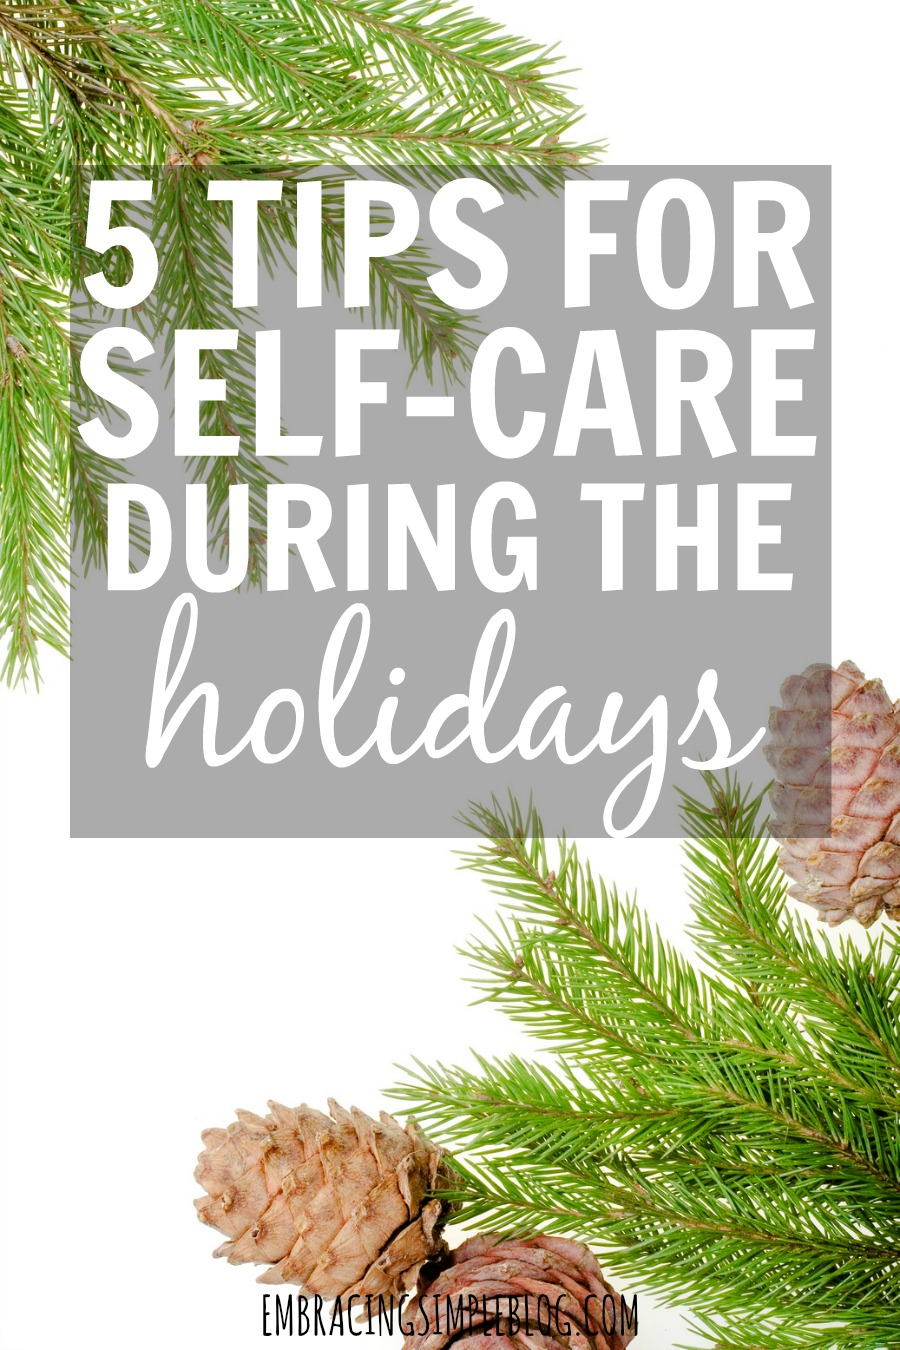 Do the holiday have you on the brink of exhaustion? Making self-care a priority during the holiday season is so important. Here are 5 tips for self-care during the holidays!